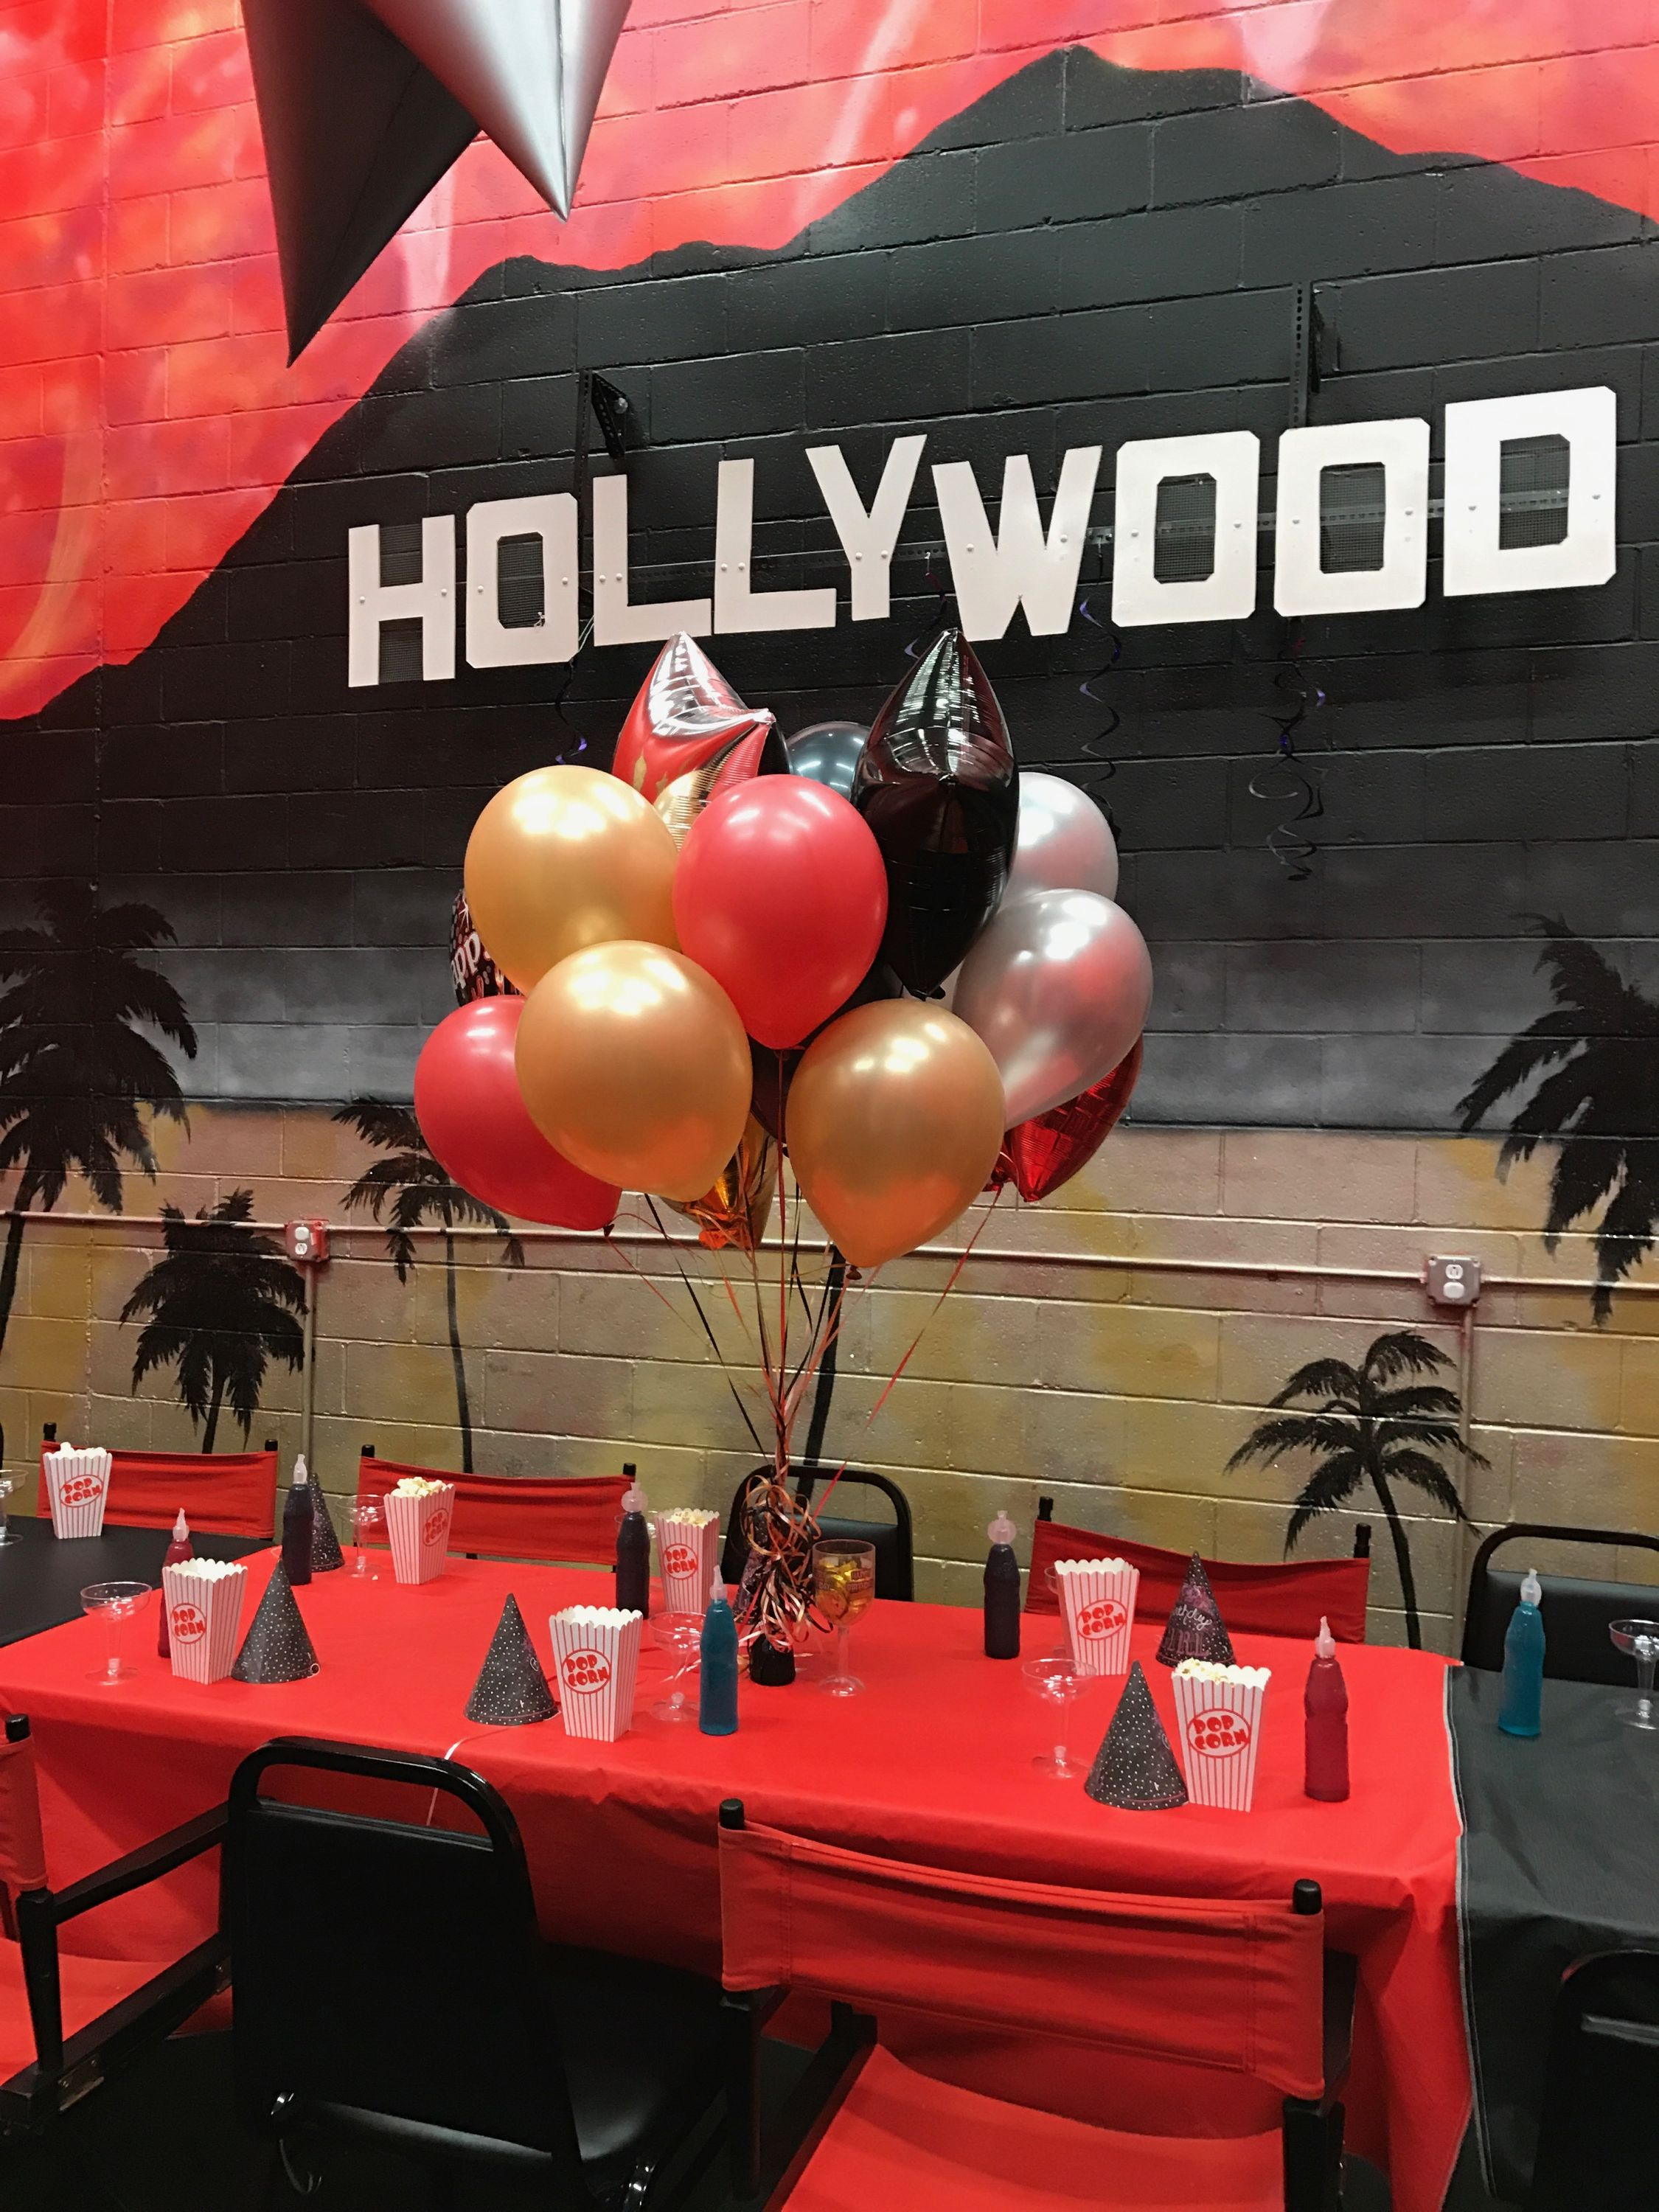 Gorgeous balloon arrangement from local dollar store at daughter's Hollywood birthday party 🎂🎉🎈